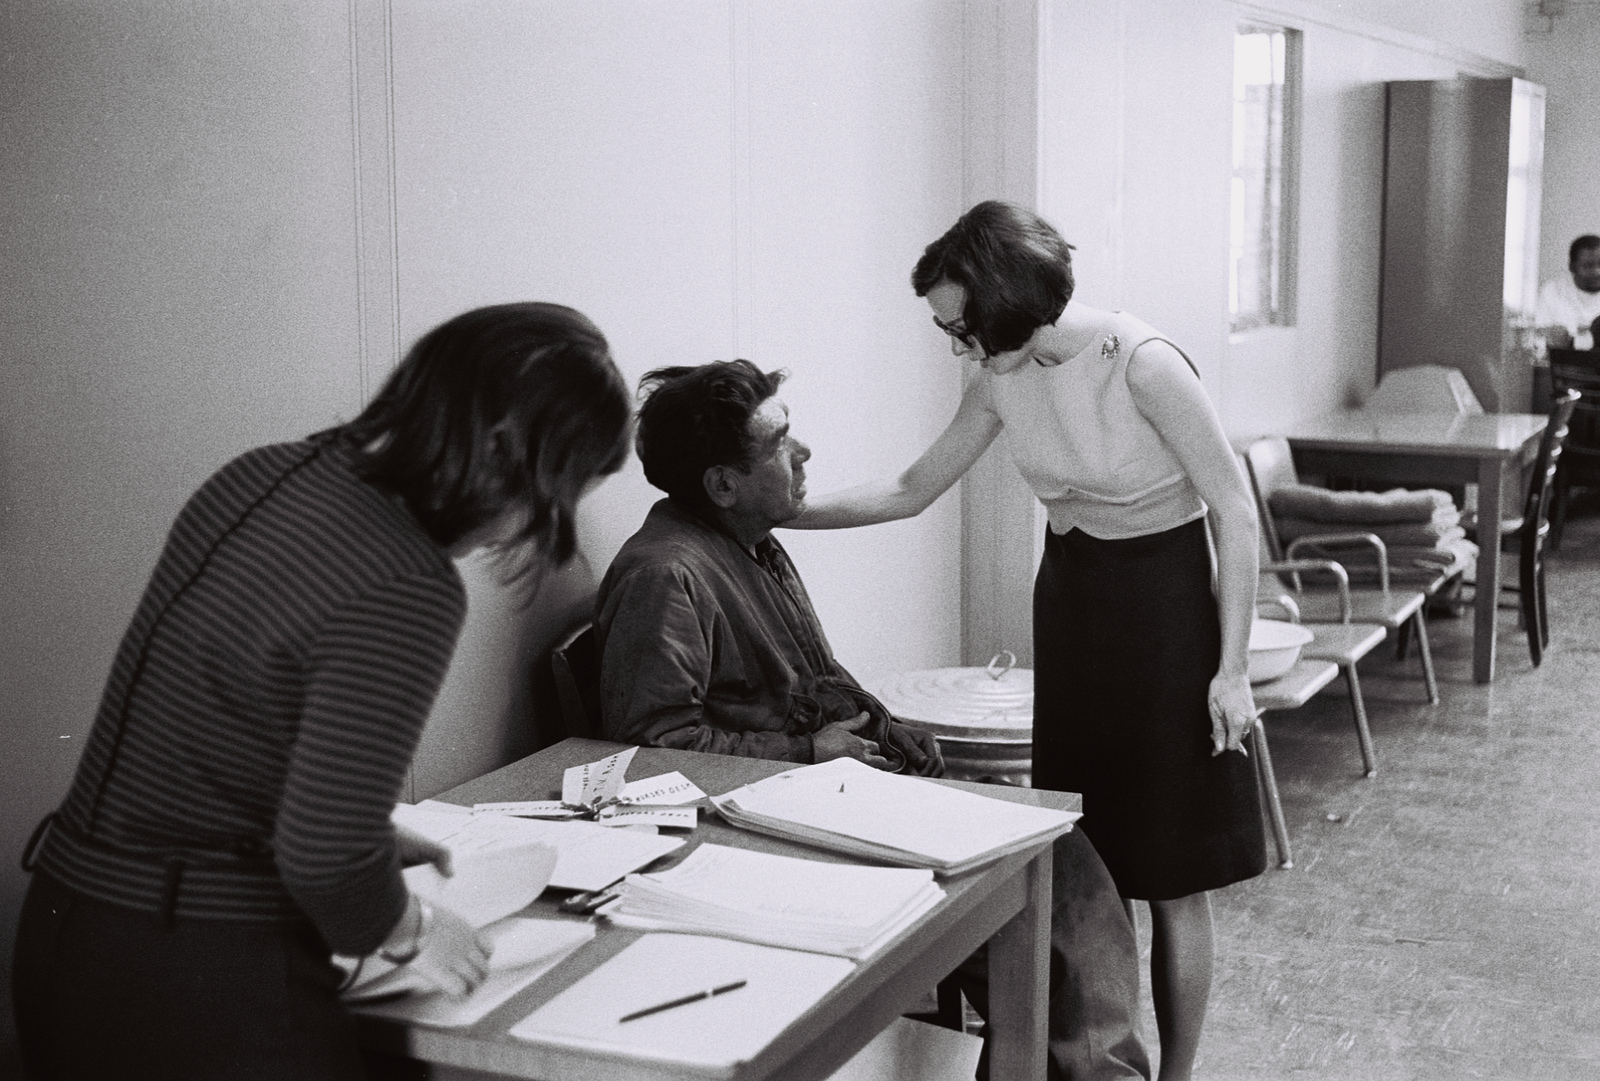 A man gets help at the medical detox clinic in 1967